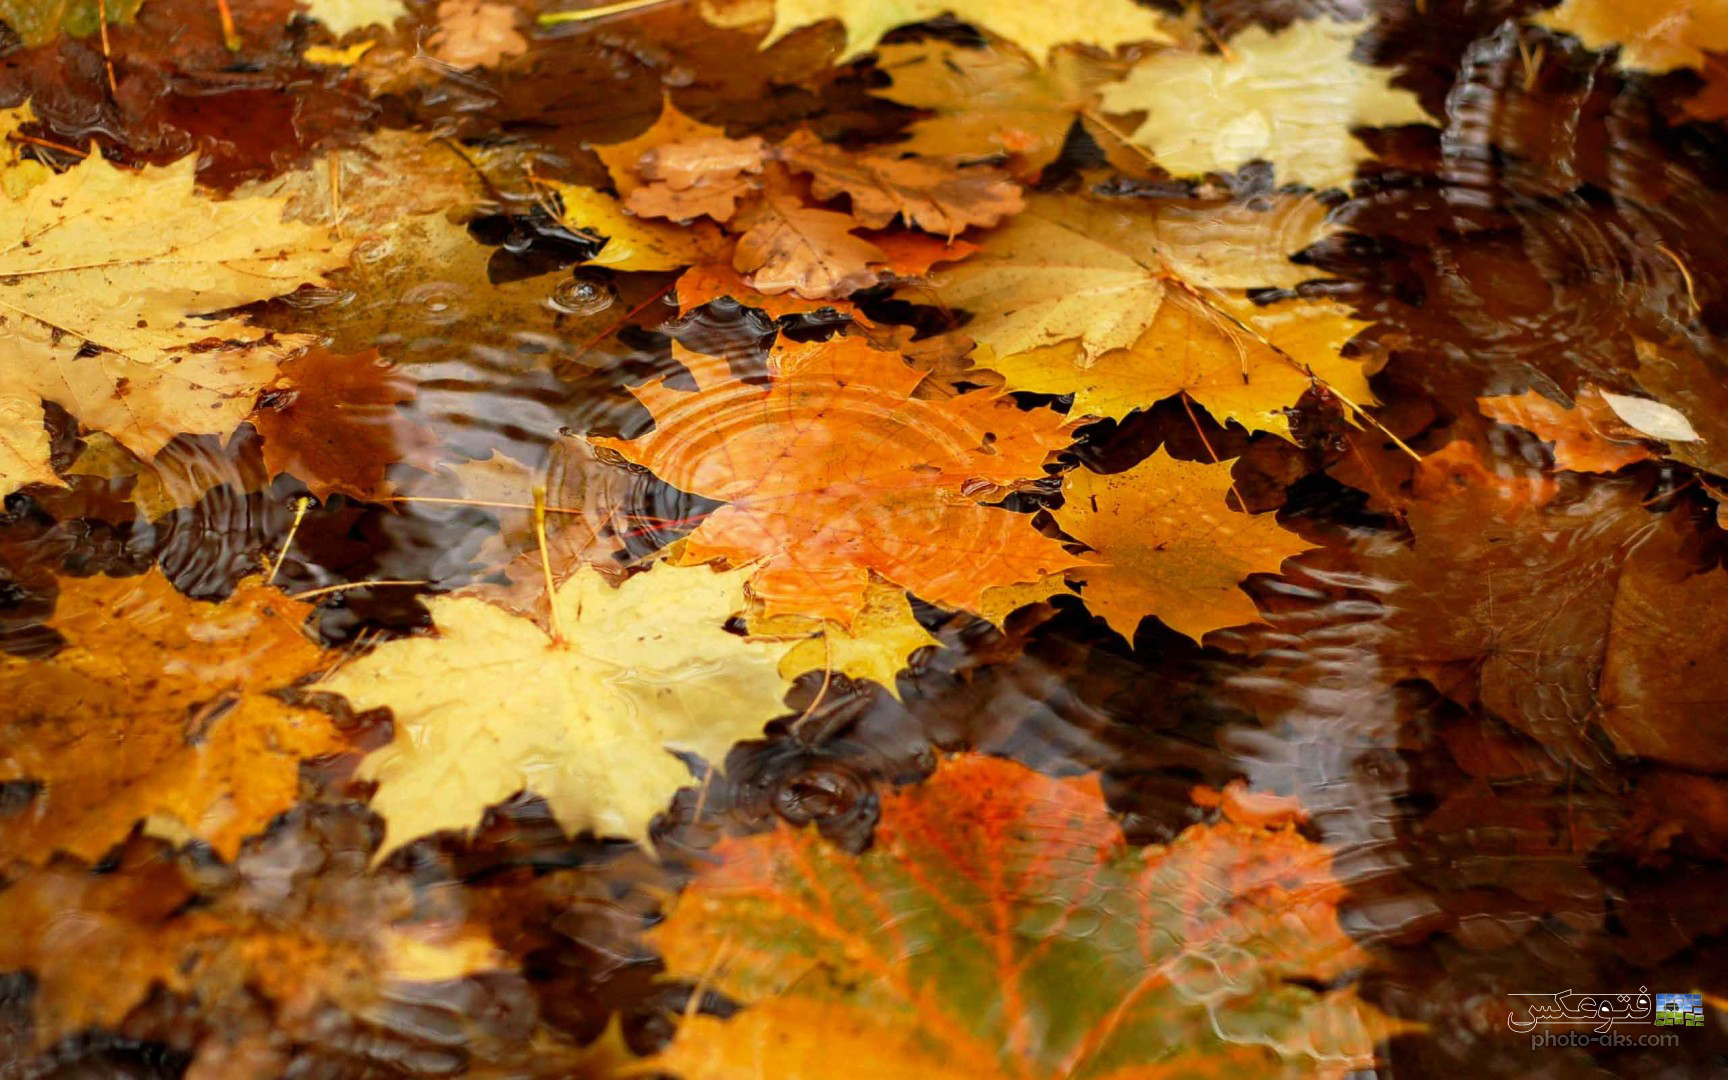 http://pic.photo-aks.com/photo/nature/season/autumn/large/wallpaper_barg_payizi.jpg